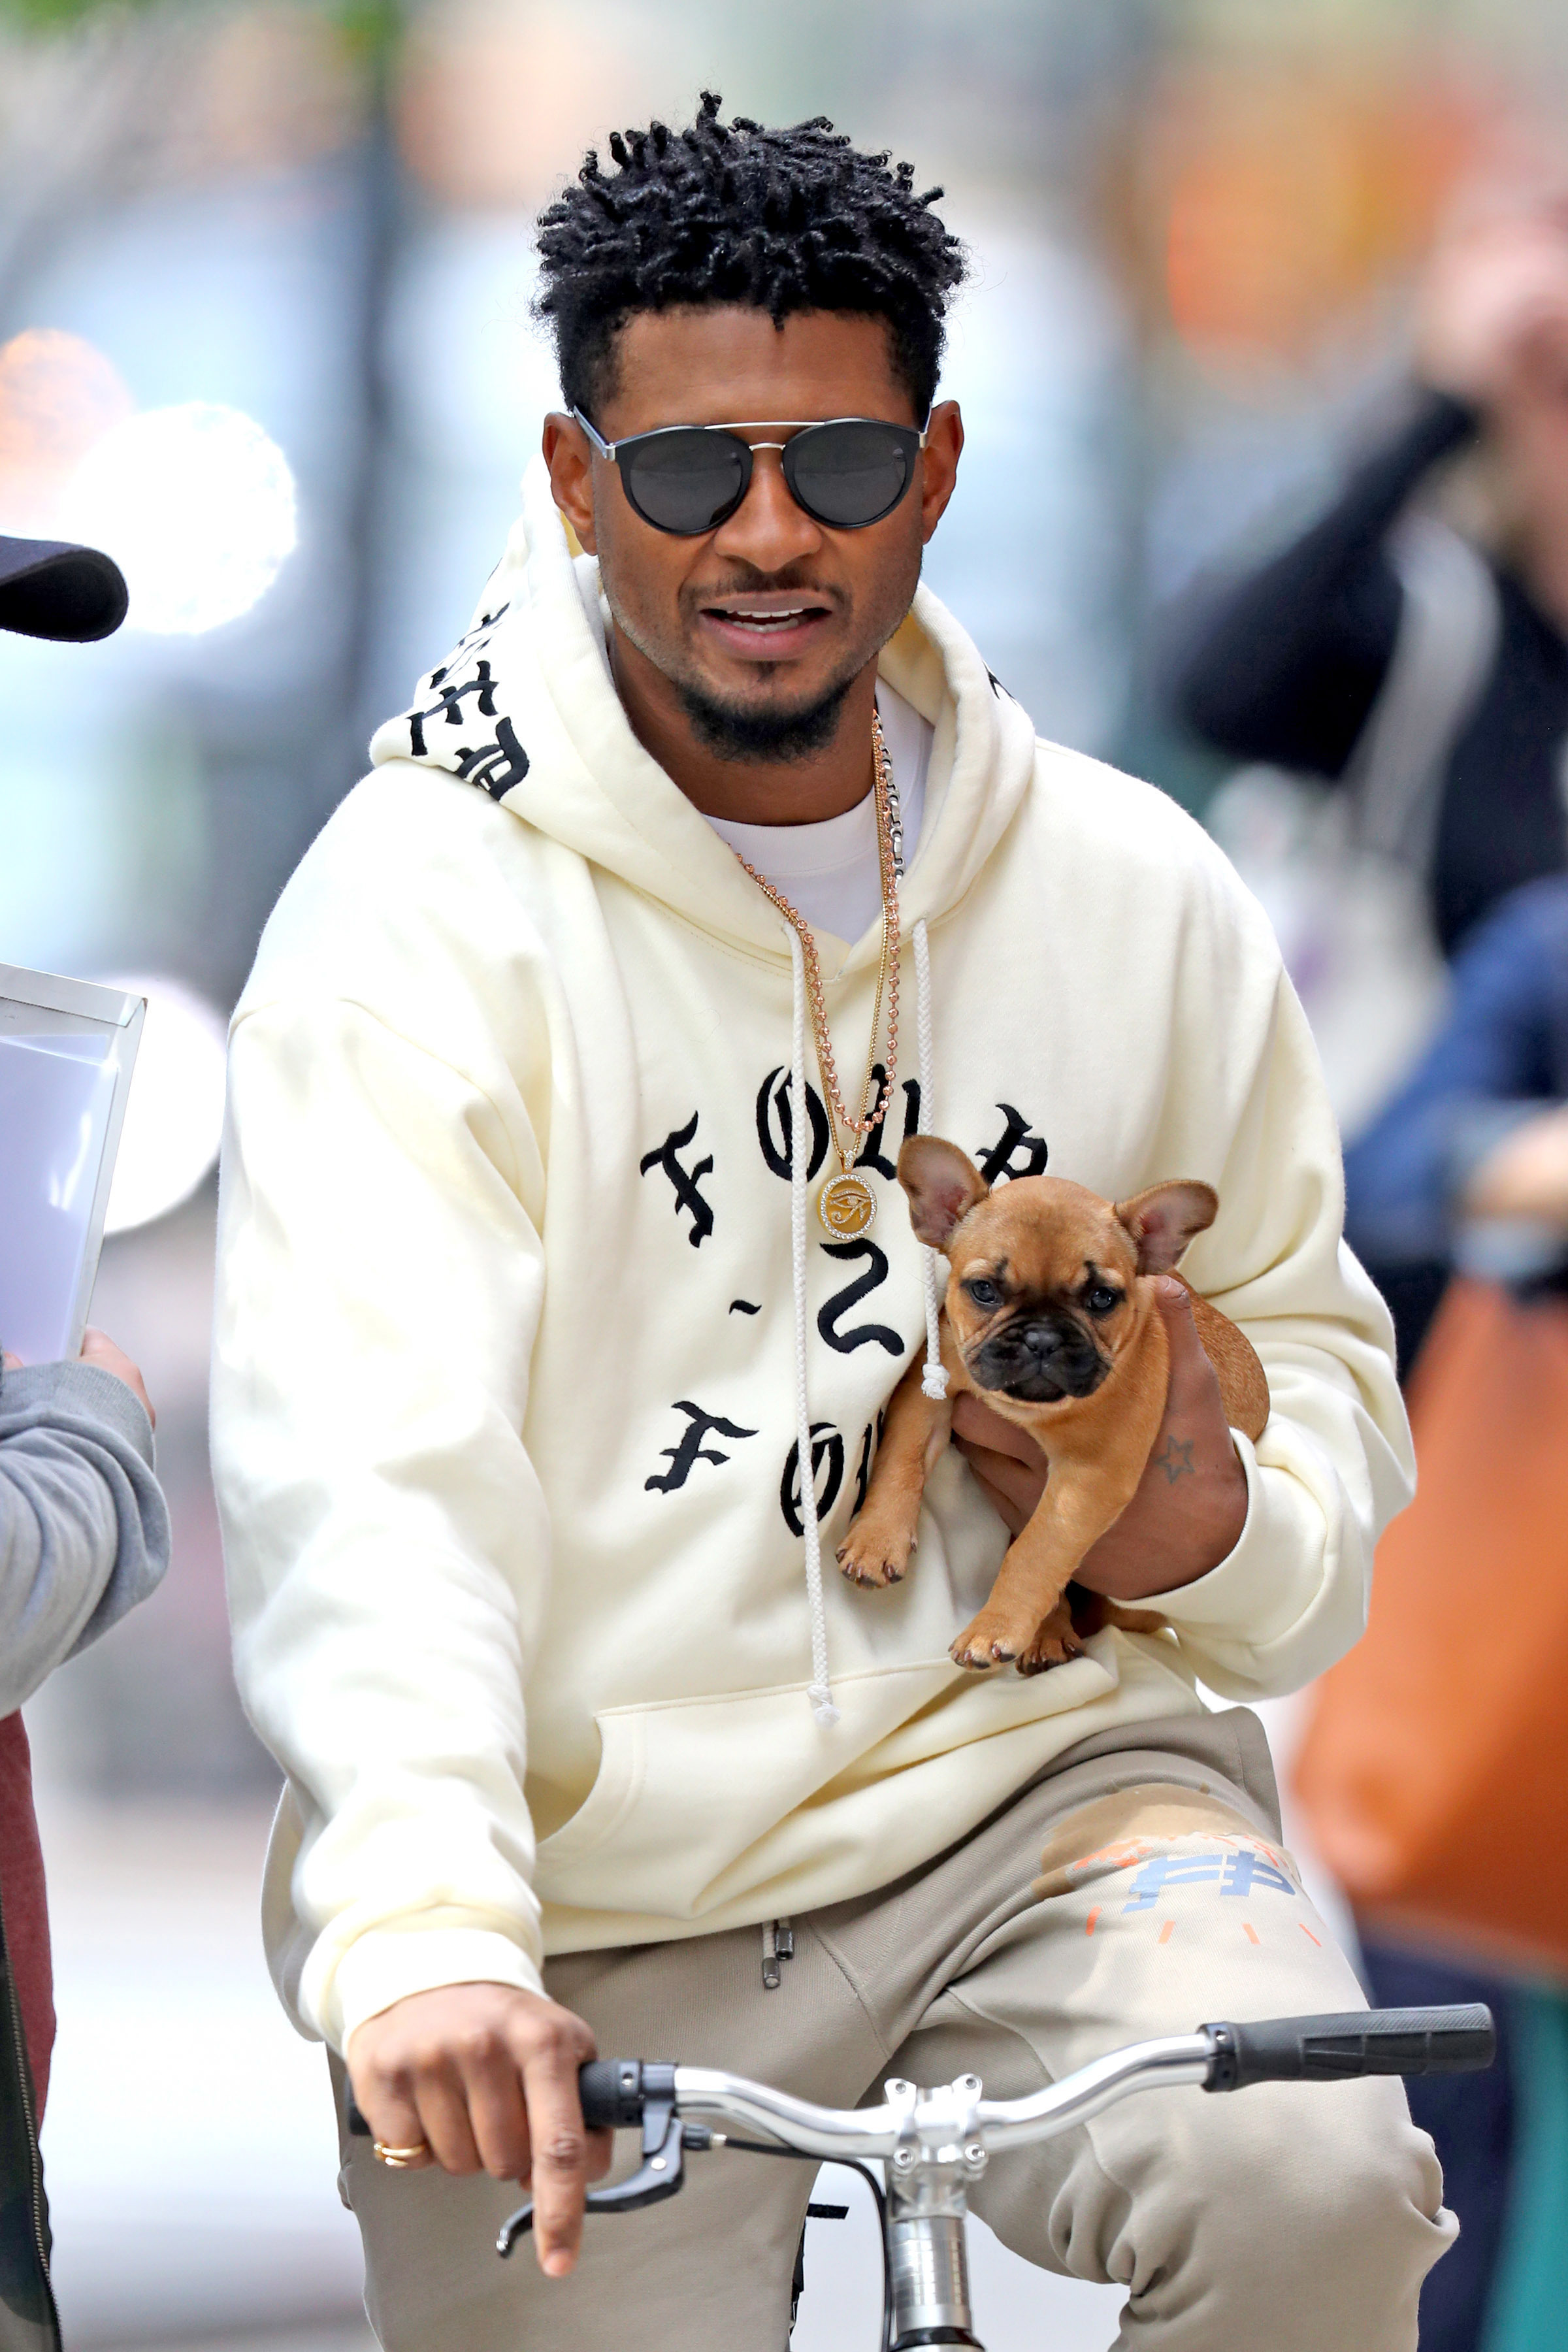 Usher took her new french bulldog puppy on a bike ride while out in New York City on May 7, 2019.